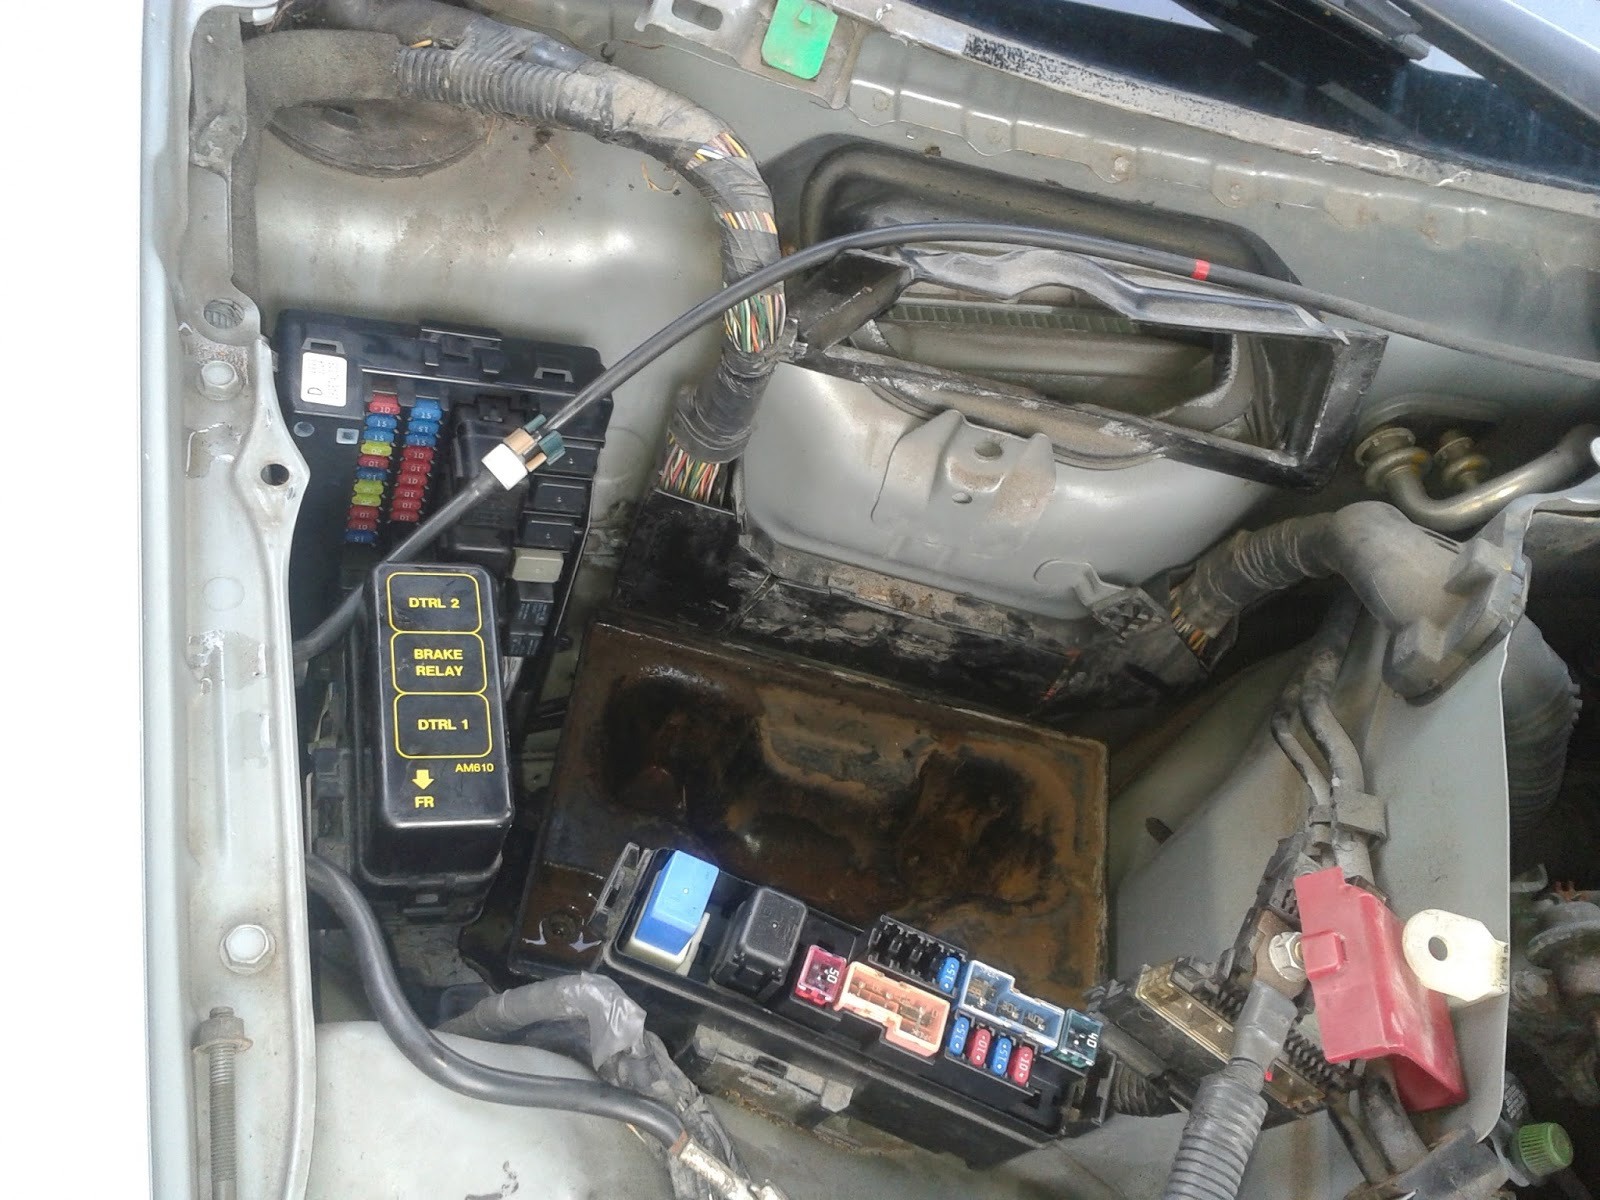 2015 05 27%2B18.55.50 zf inifiniti g35 2003 wet ipdm issue, how to fix it 2004 infiniti g35 fuse box location at crackthecode.co